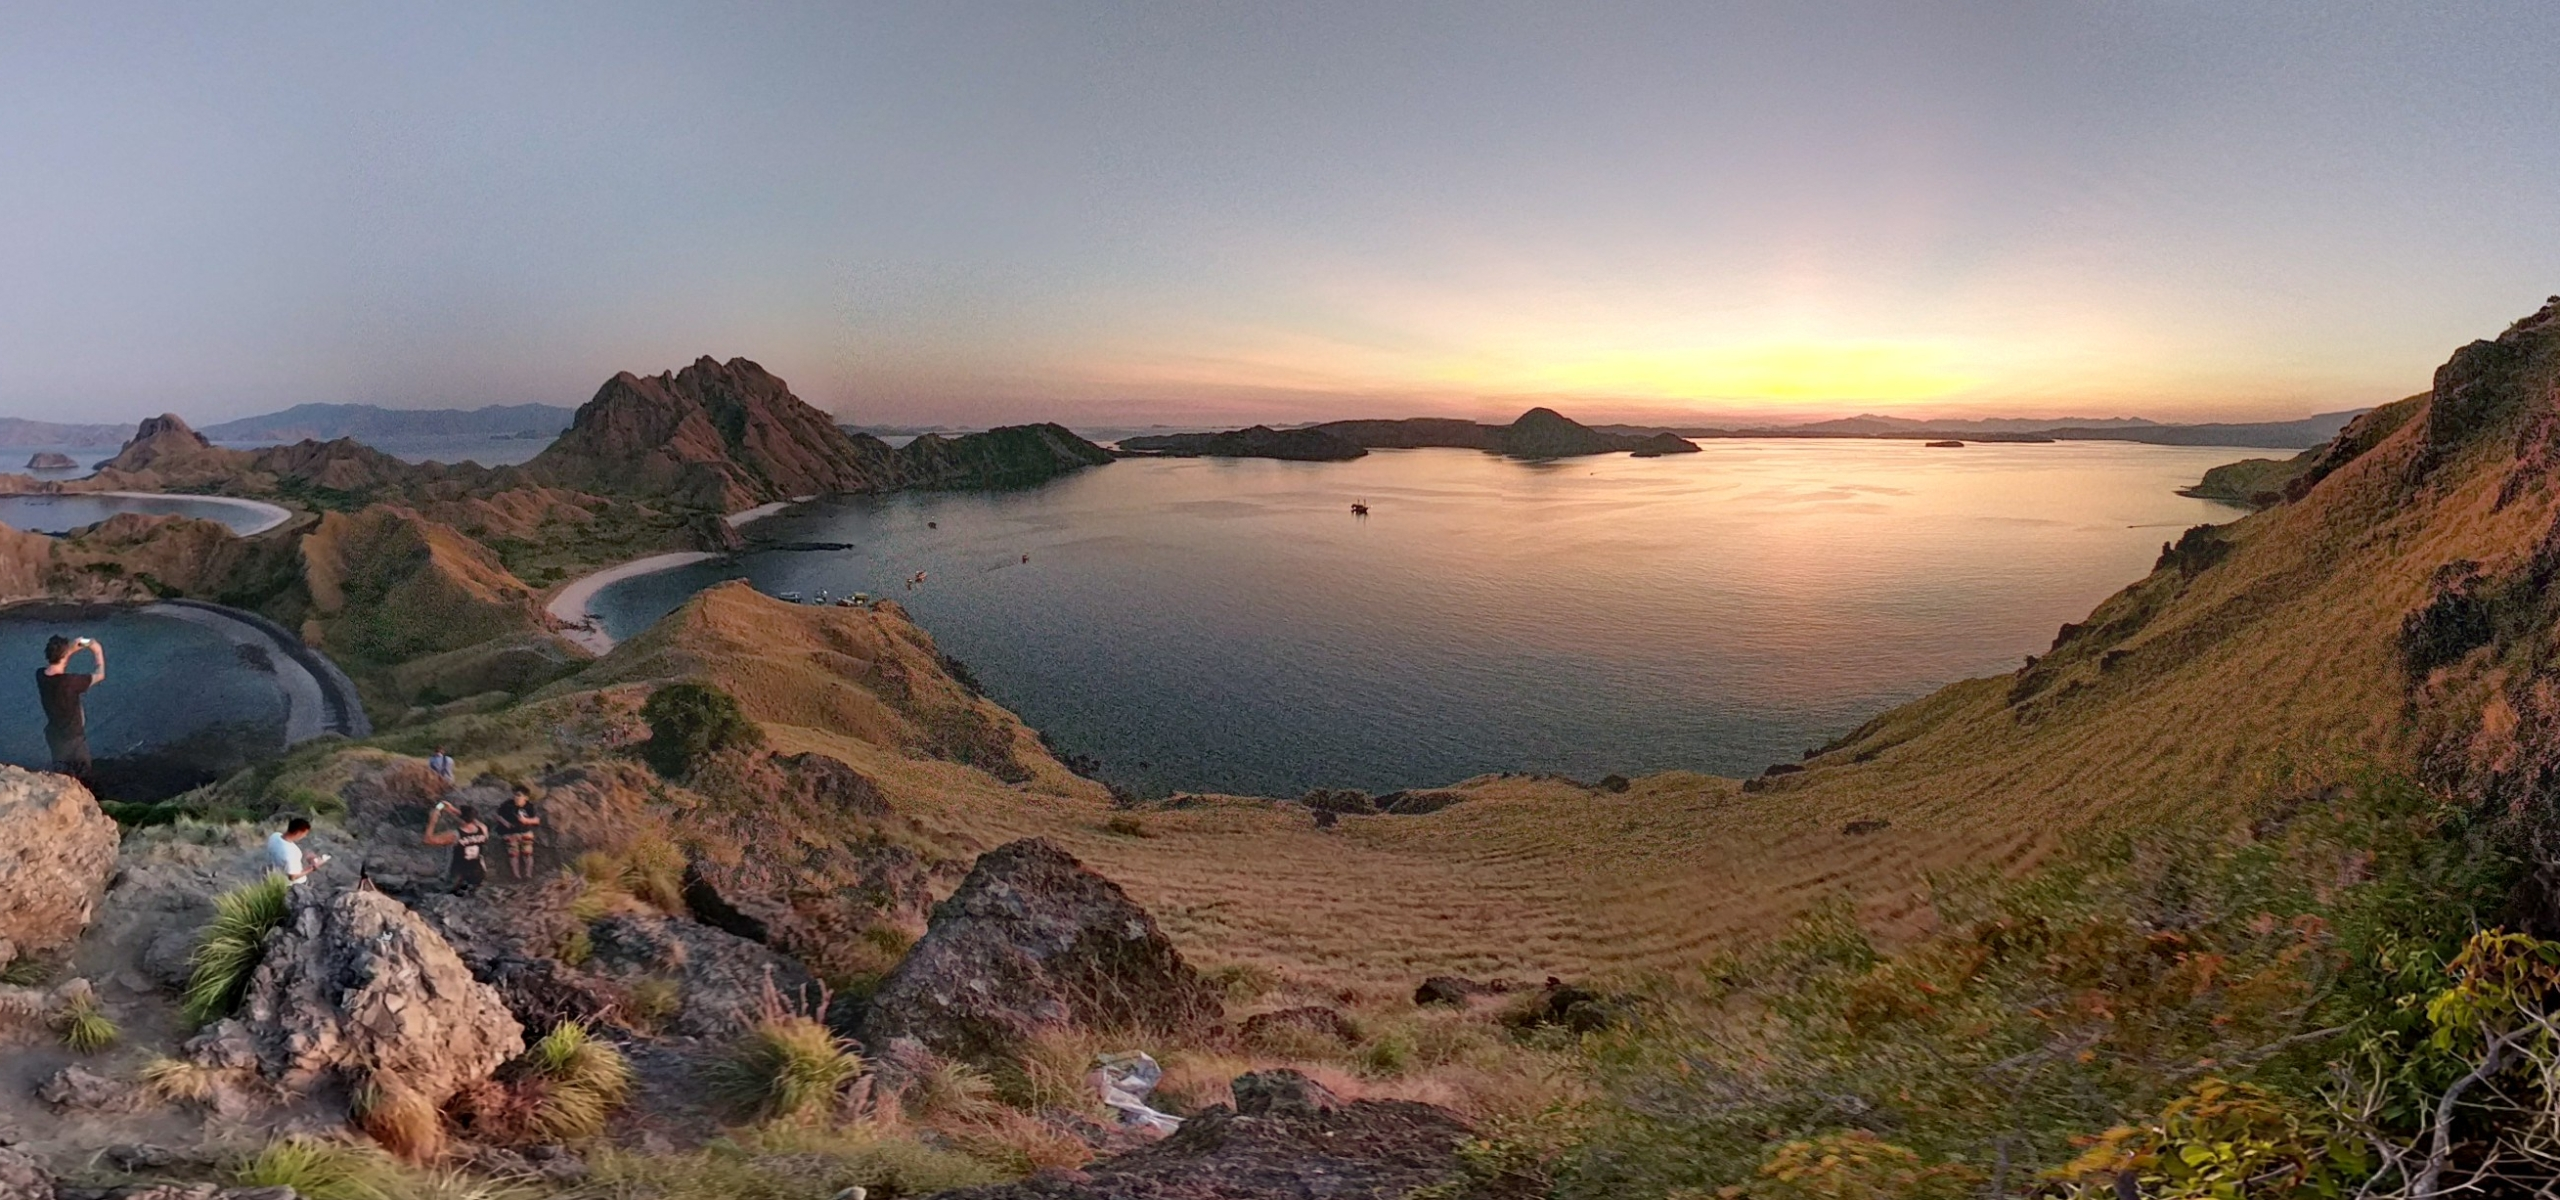 Pulau padar island komodo national park hiking indonesia